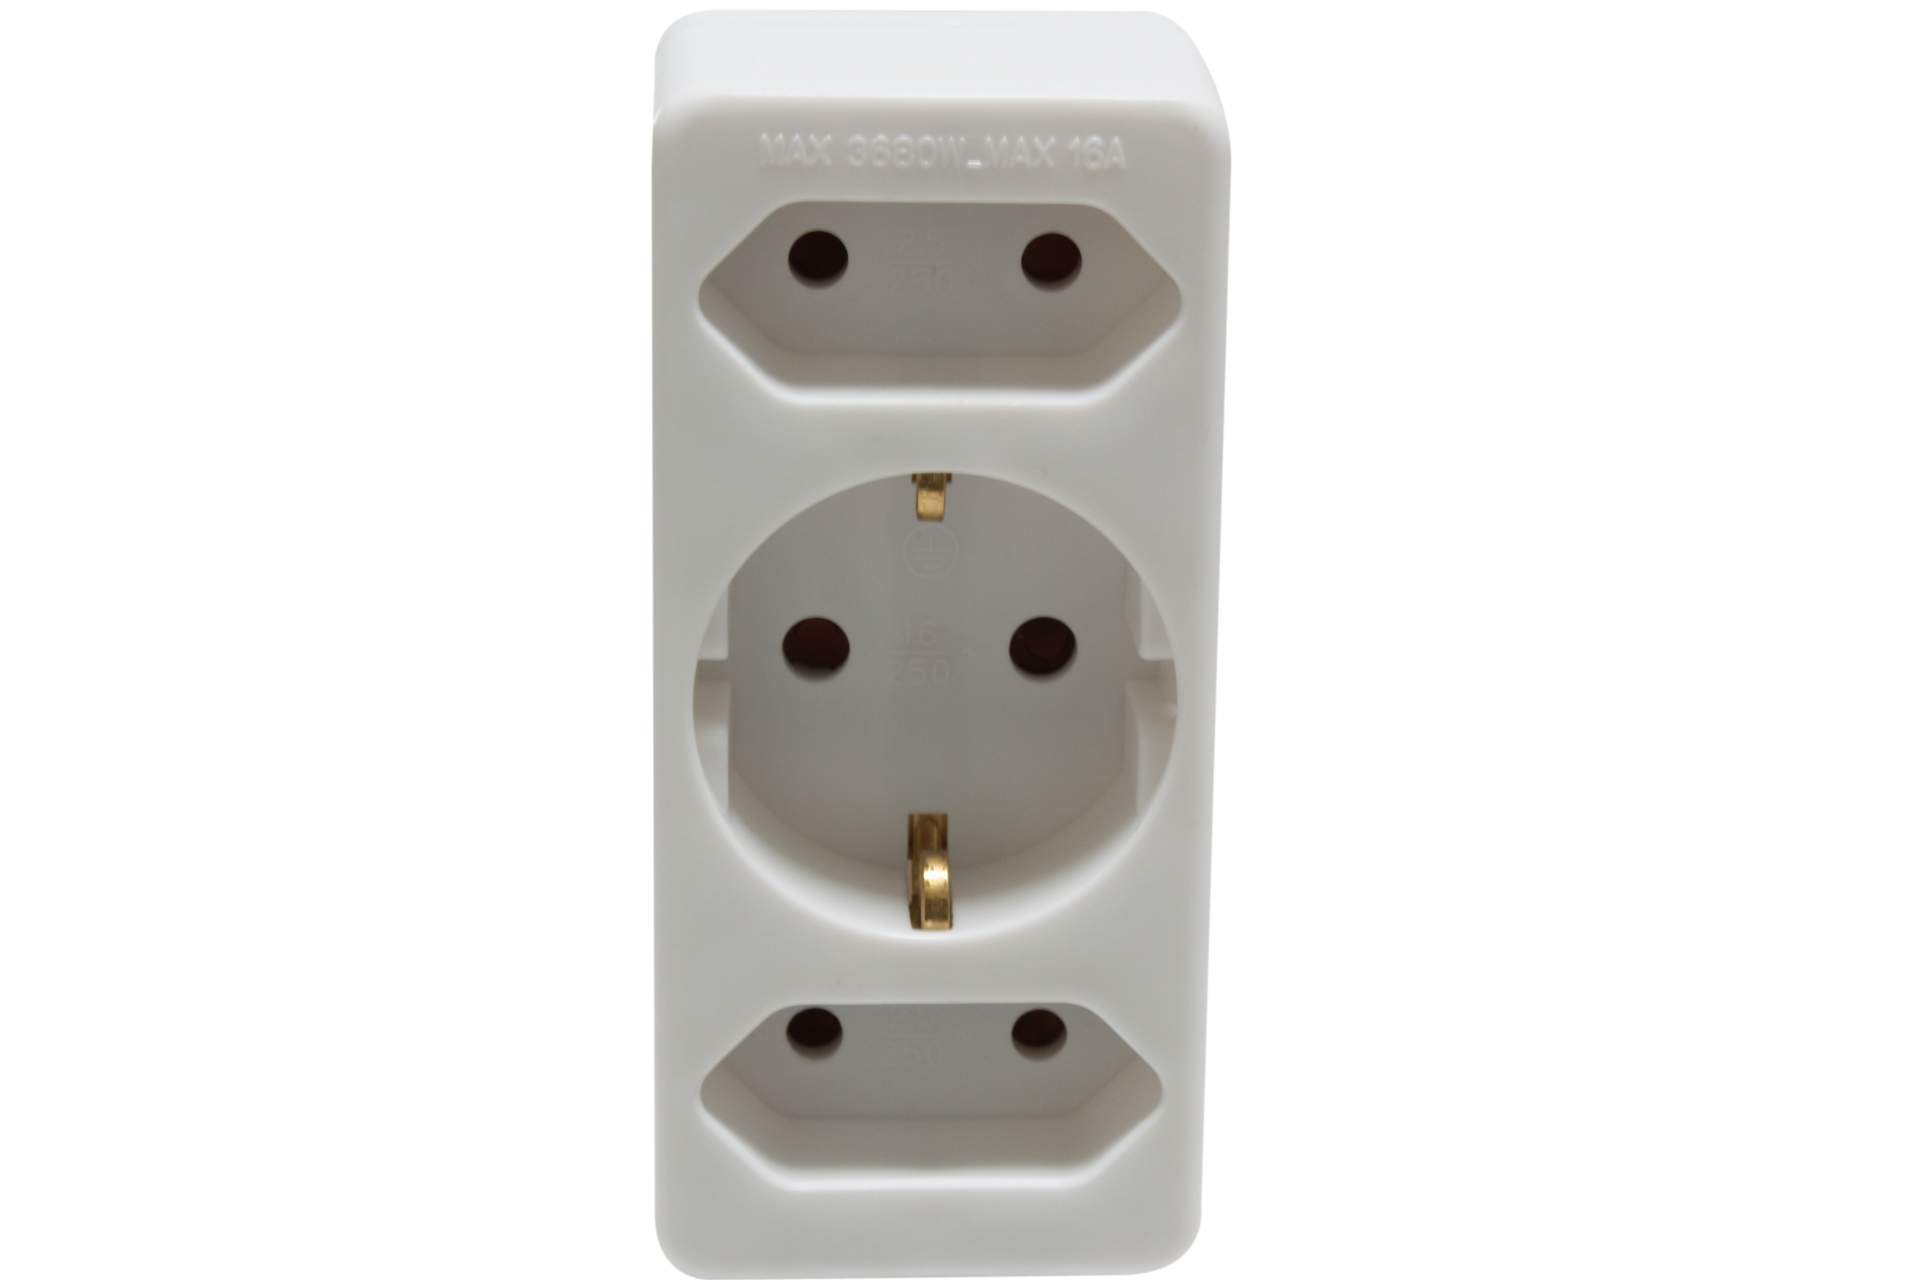 3fach stecker mit kindersicherung steckdose adapter strom schalter lichterkette ebay. Black Bedroom Furniture Sets. Home Design Ideas